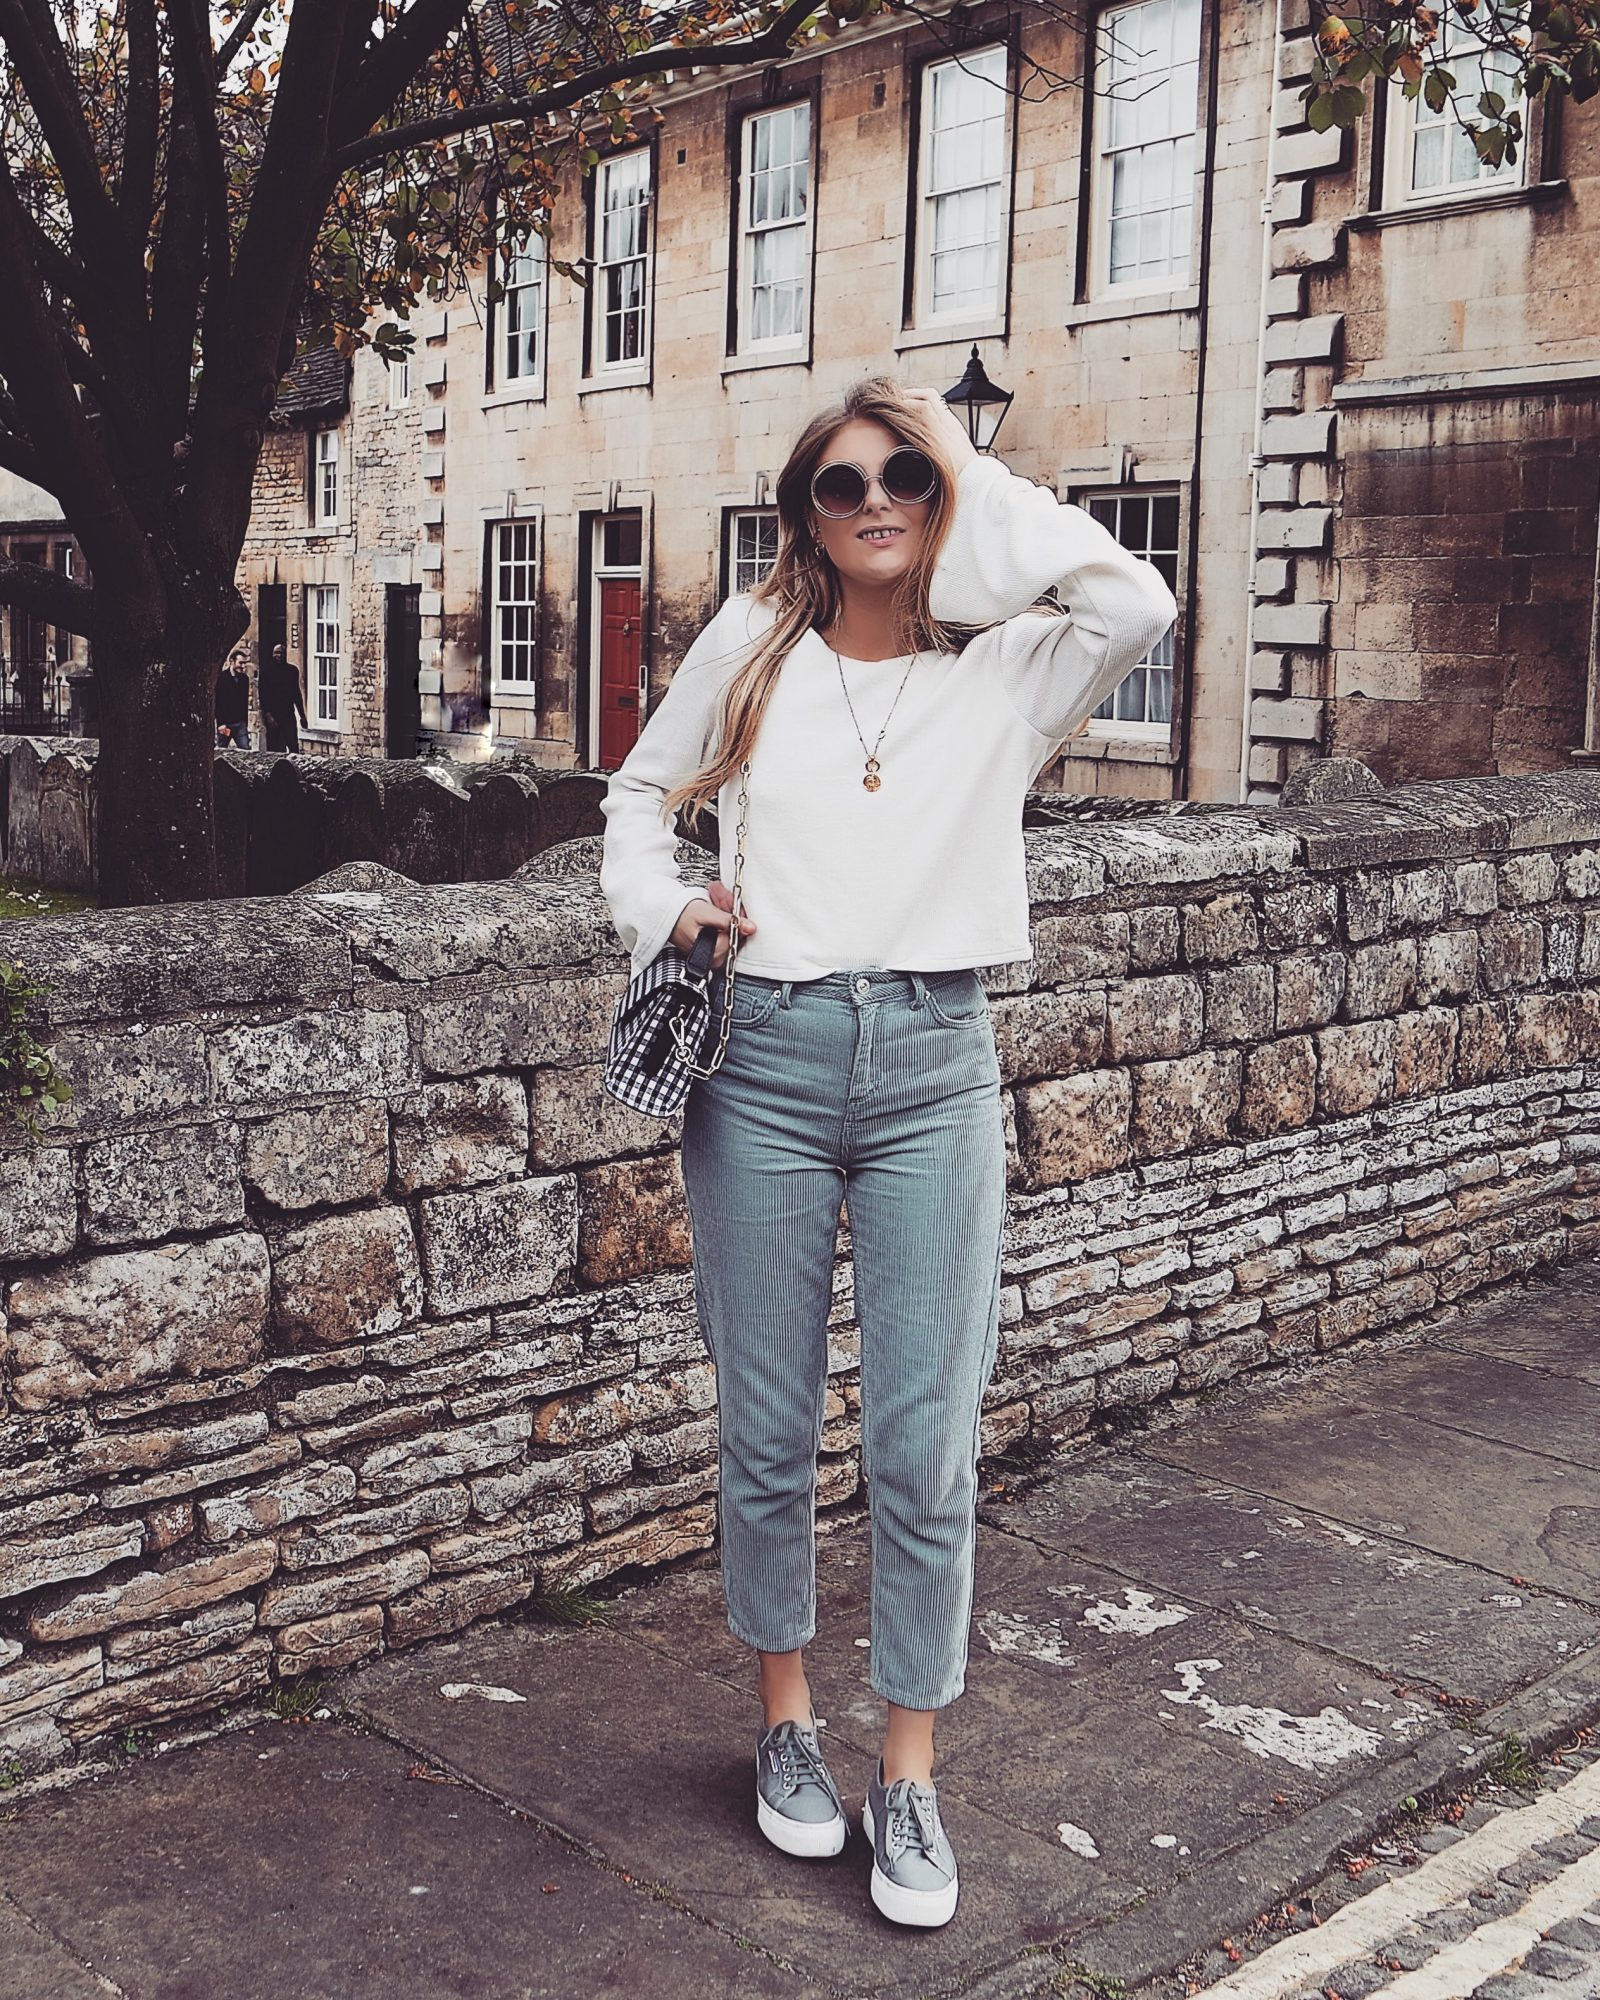 Blue Corduroy Trousers - Fall Outfit Inspiration